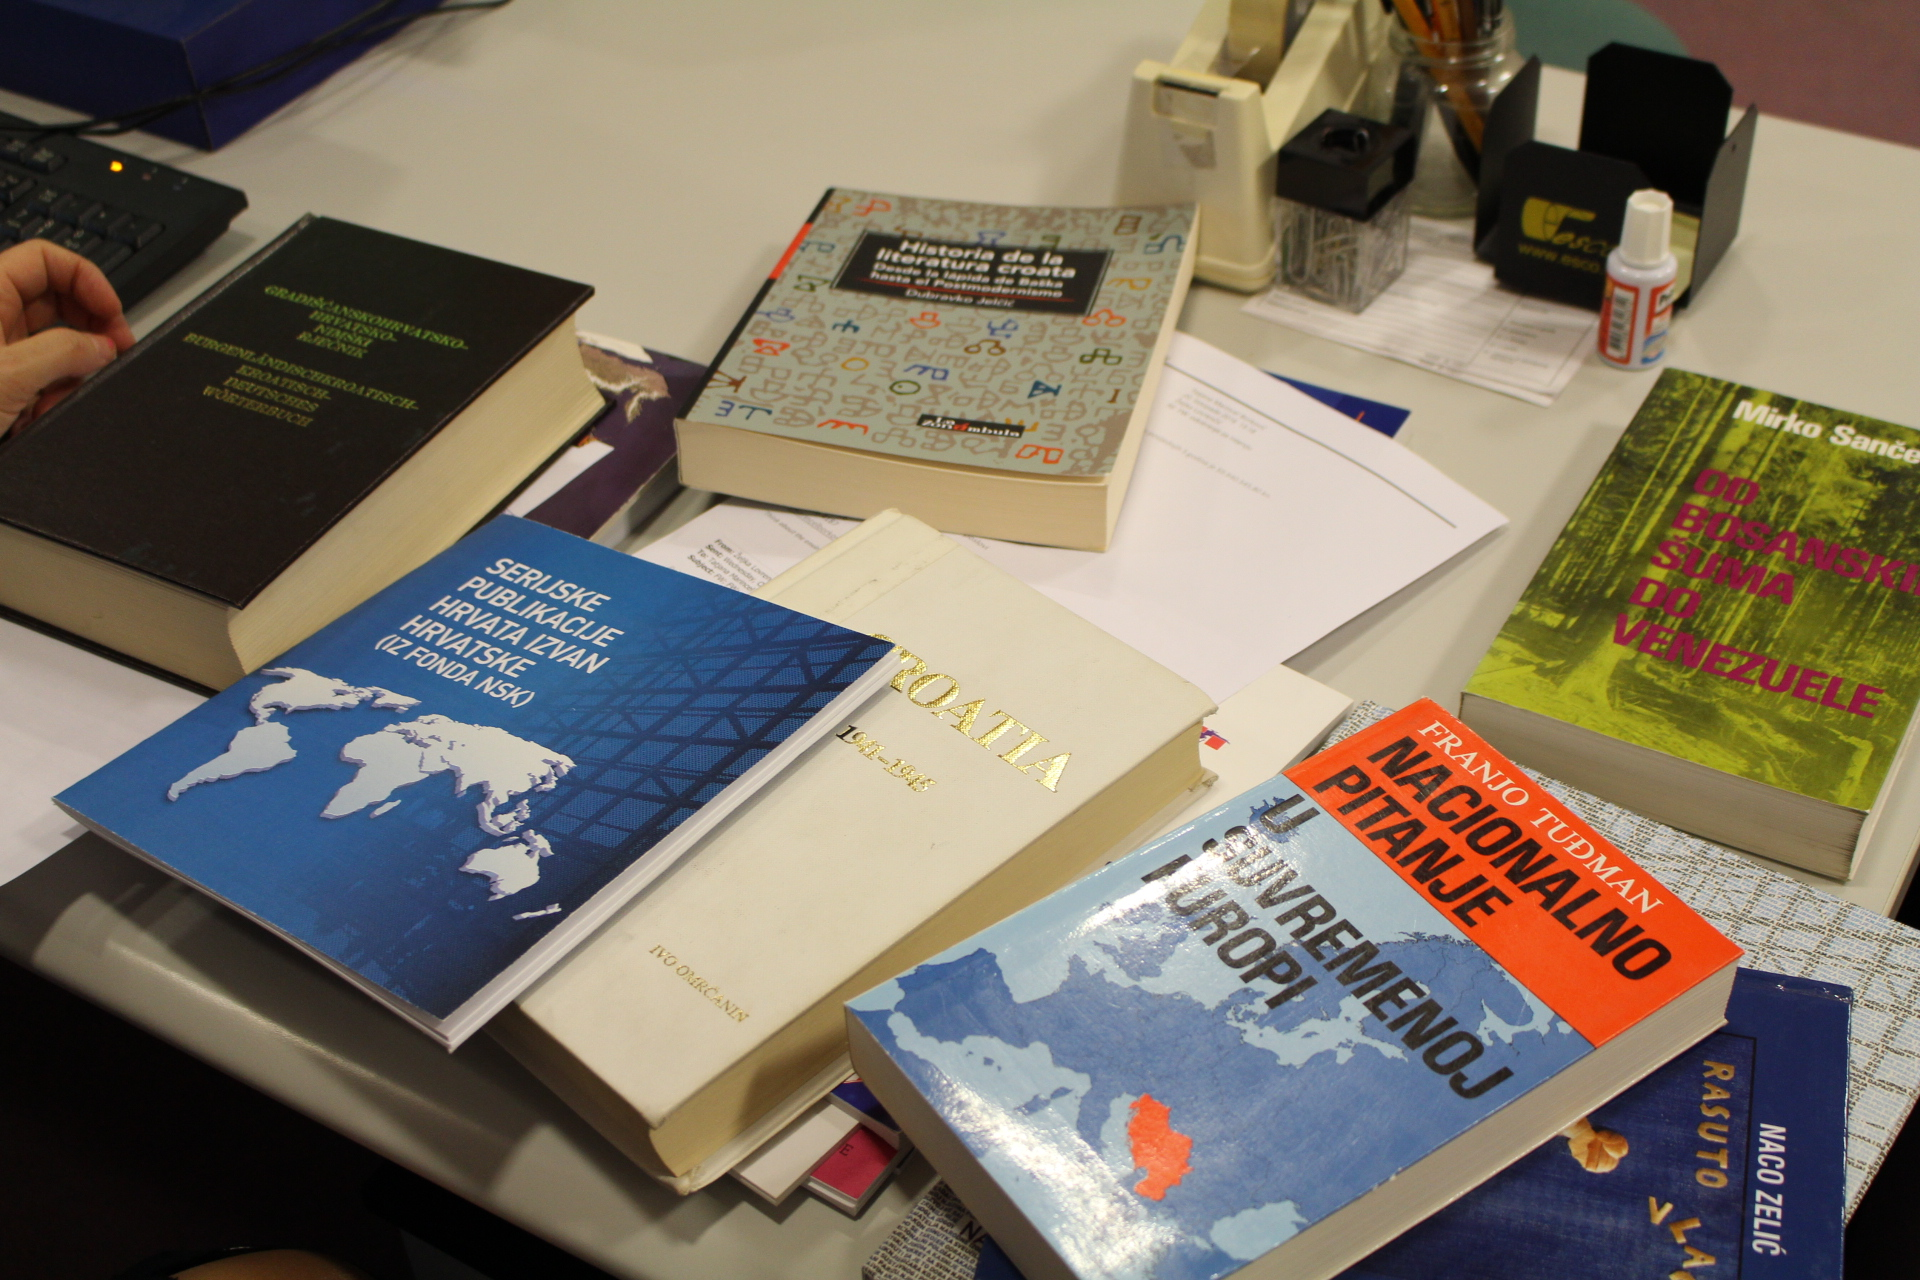 Books from the Foreign Croatica Collection